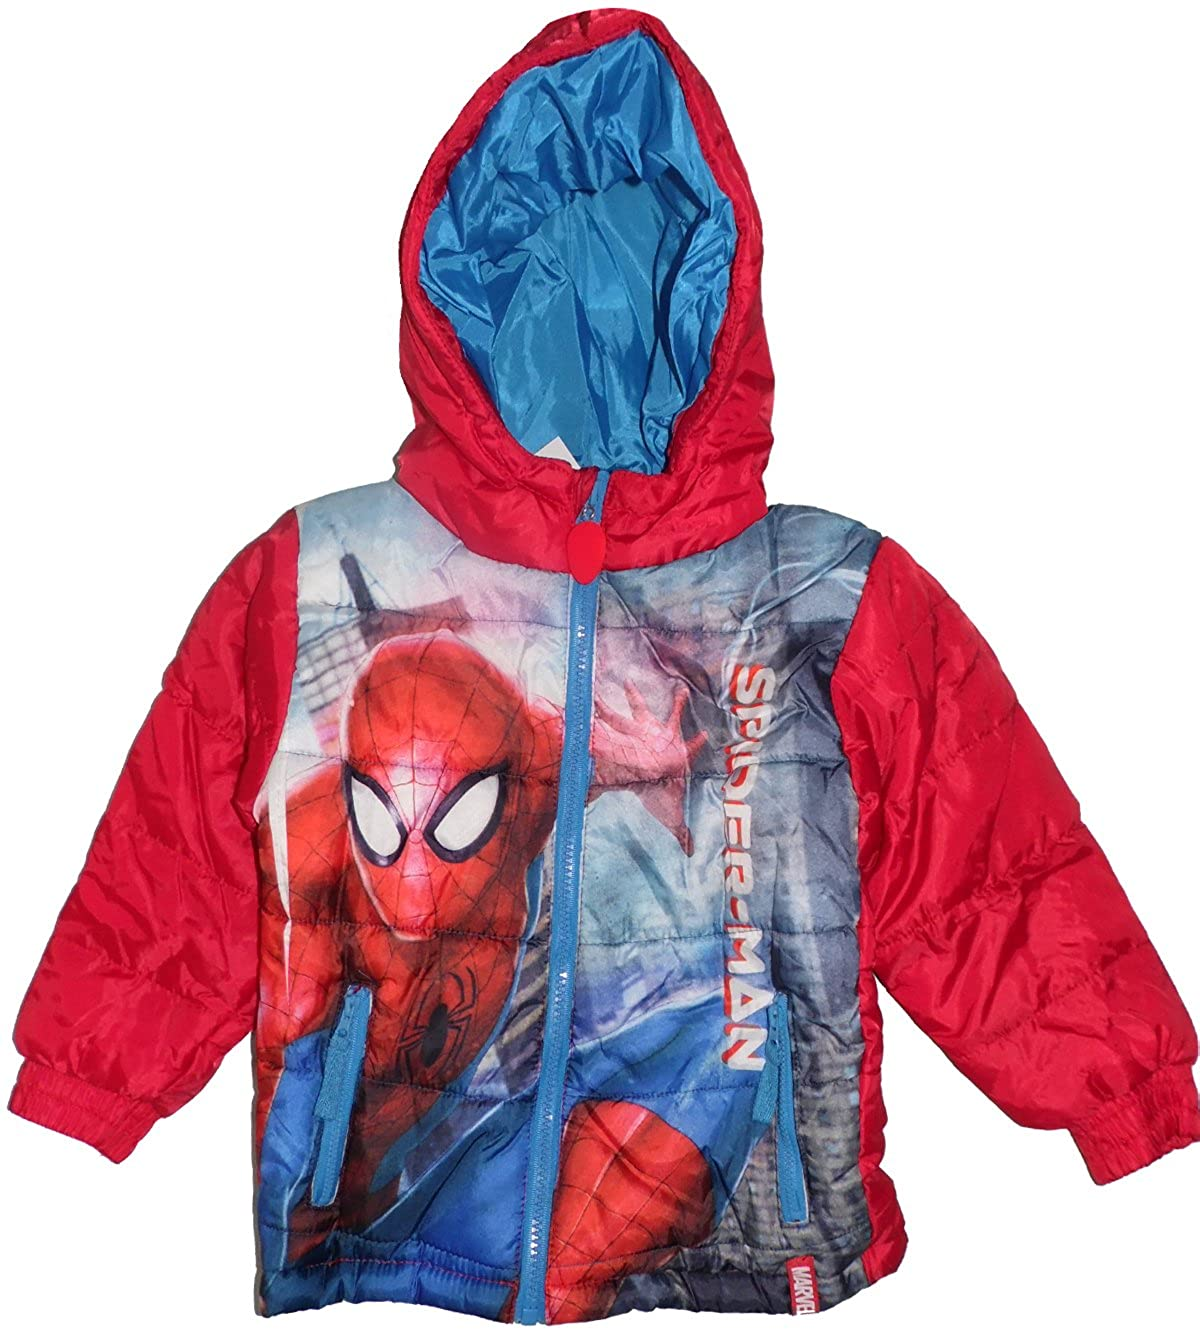 Marvel Avengers Spider Man Boys Padded Winter Jacket